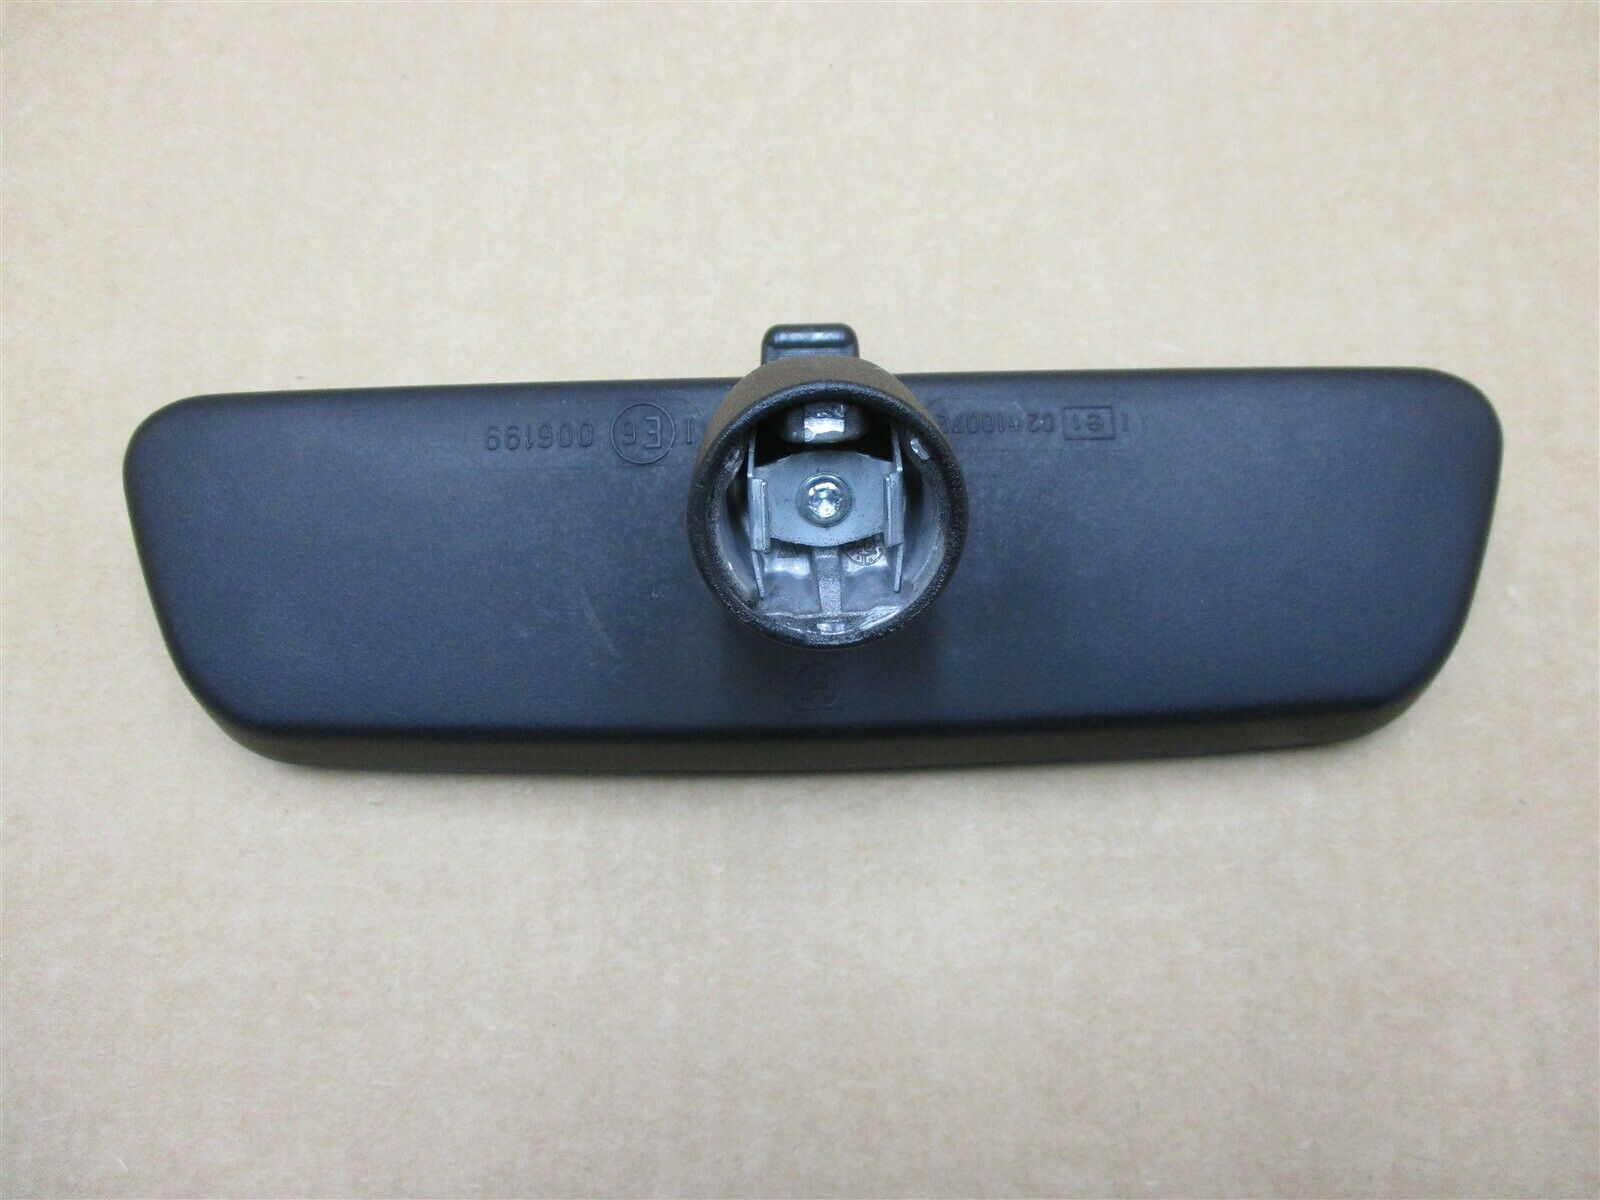 02 Carrera 4S 911 Porsche 996 Coupe INTERIOR REAR VIEW MIRROR HOUSING 153,363